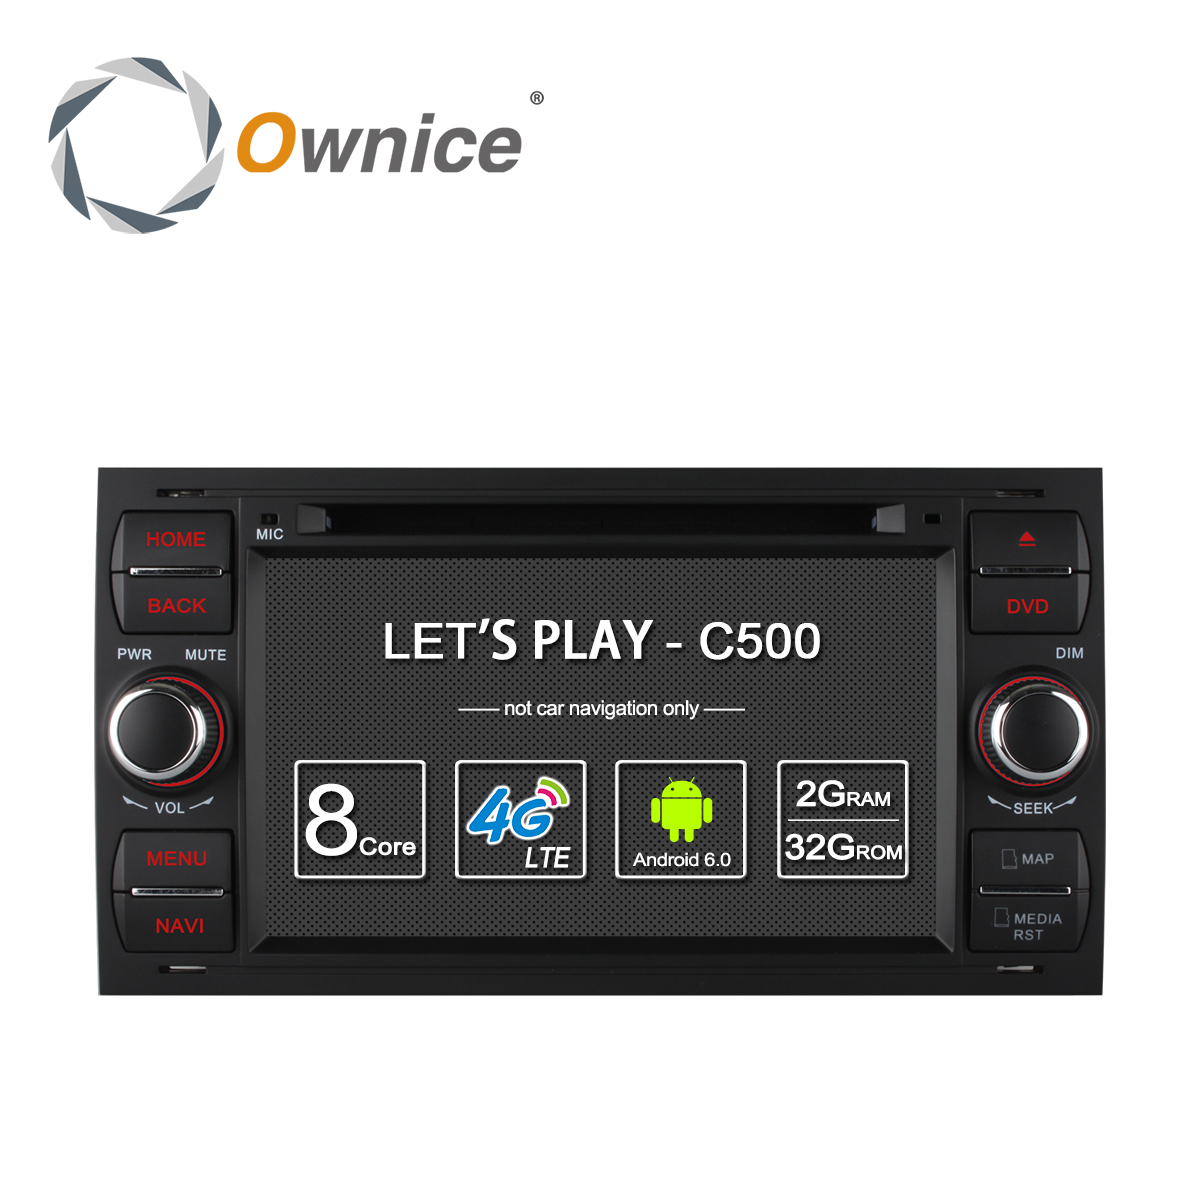 Ownice C500 Android 6 0 Octa 8 Core In Dash Car DVD Player For Ford Mondeo